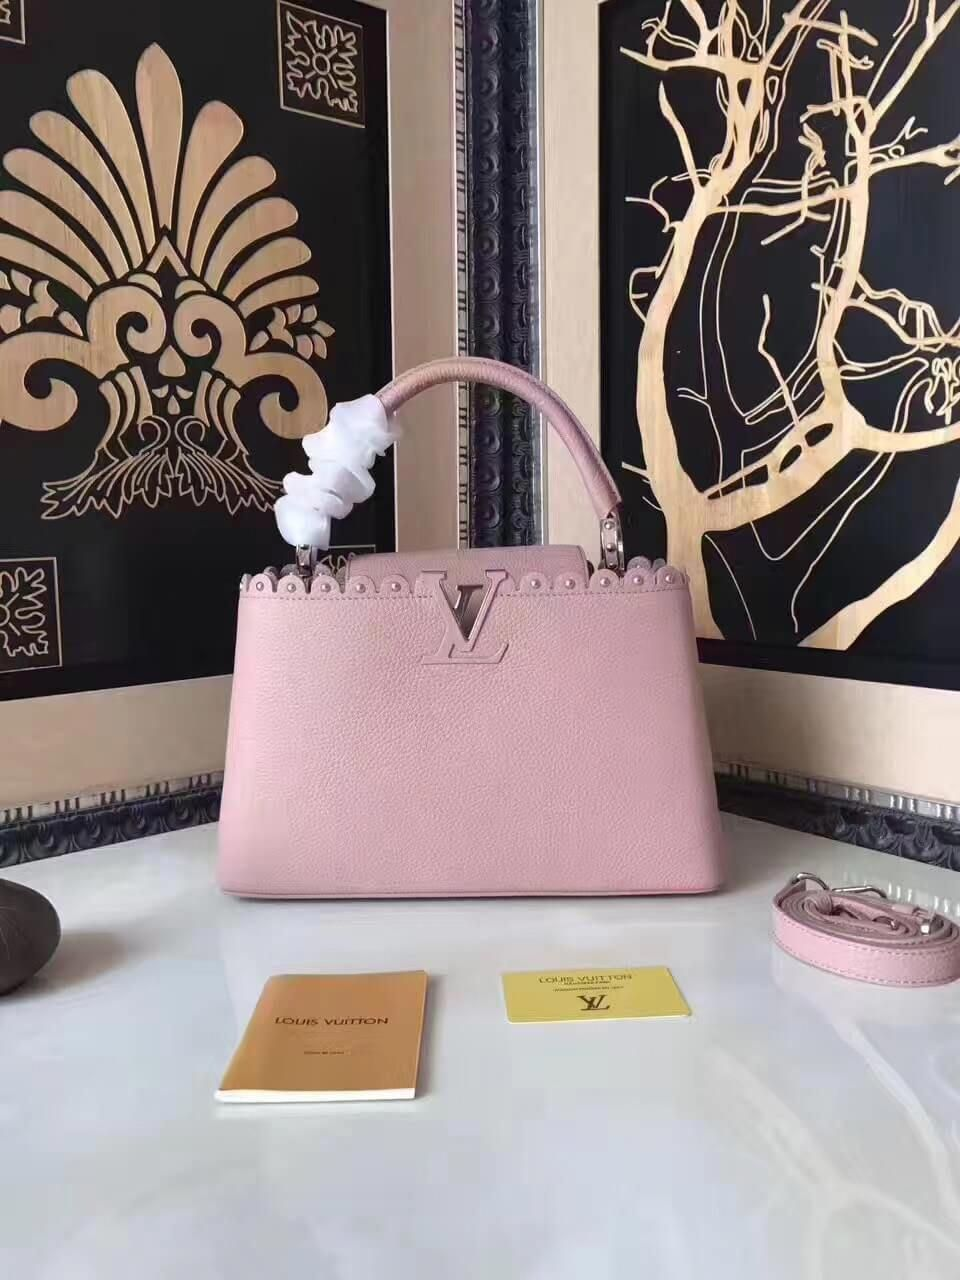 Louis Vuitton Taurillon Leather Capucines PM With Lace   Studs Edge Pink  2017  Louisvuittonhandbags 555f48efc1